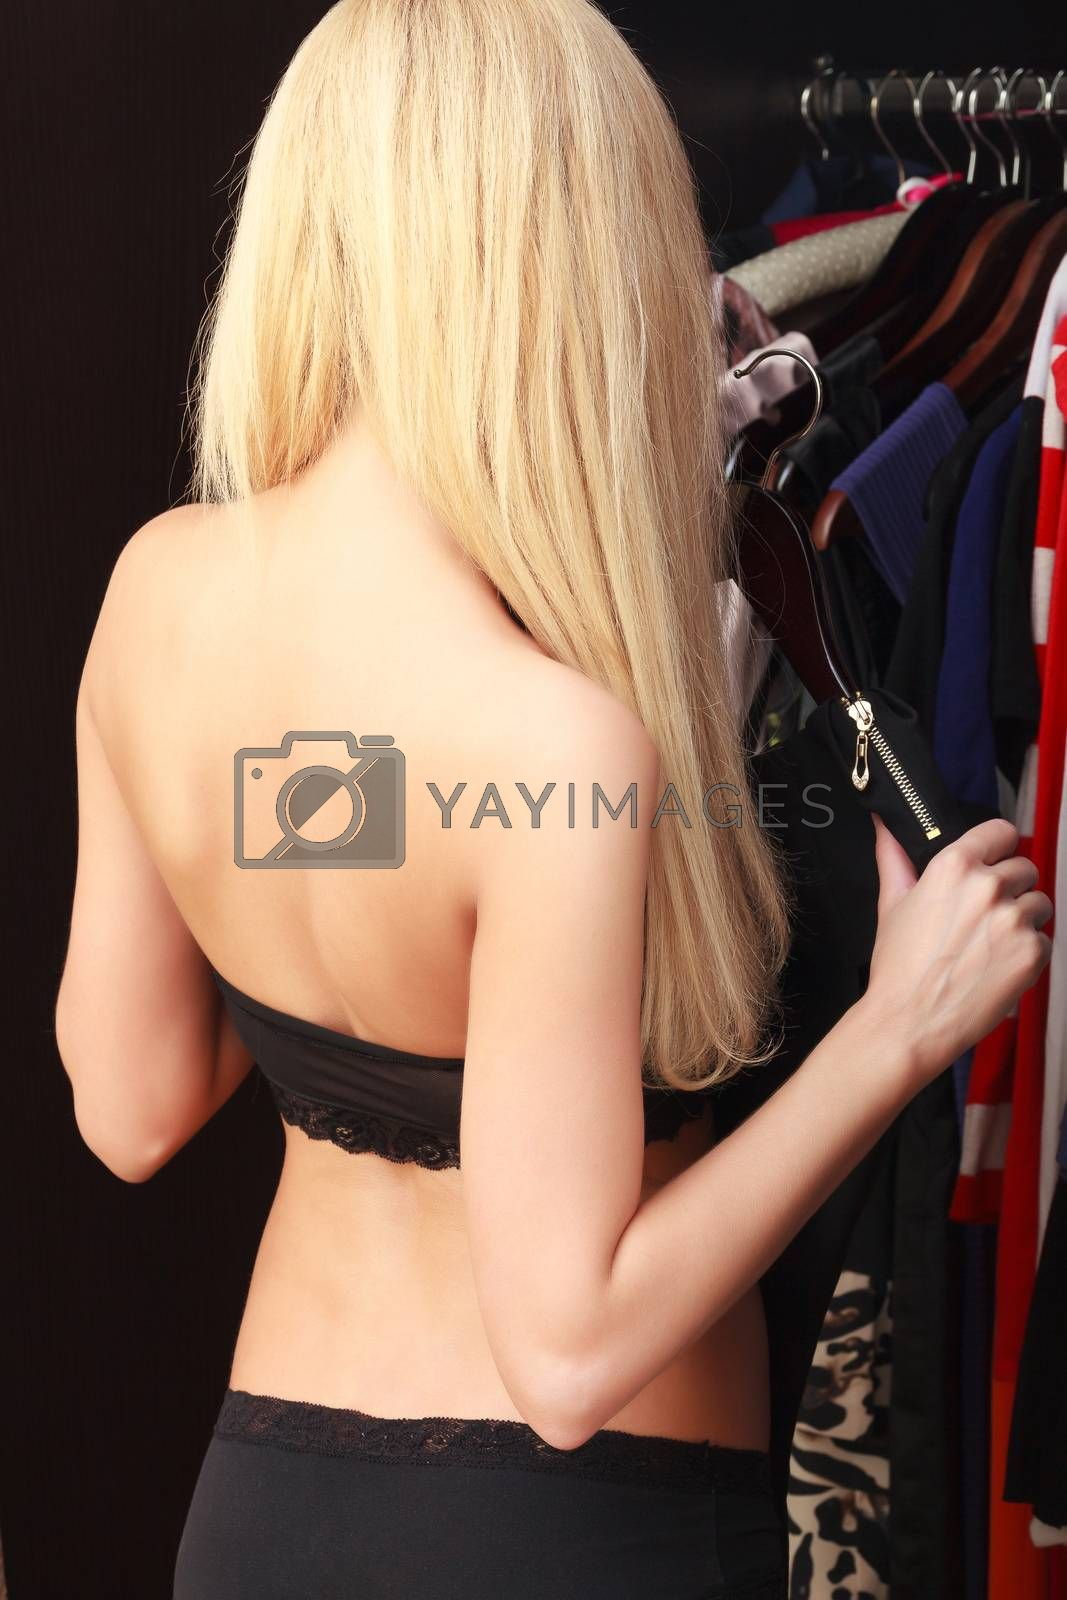 Young woman choose clothes in wardrobe at her place, view from behind